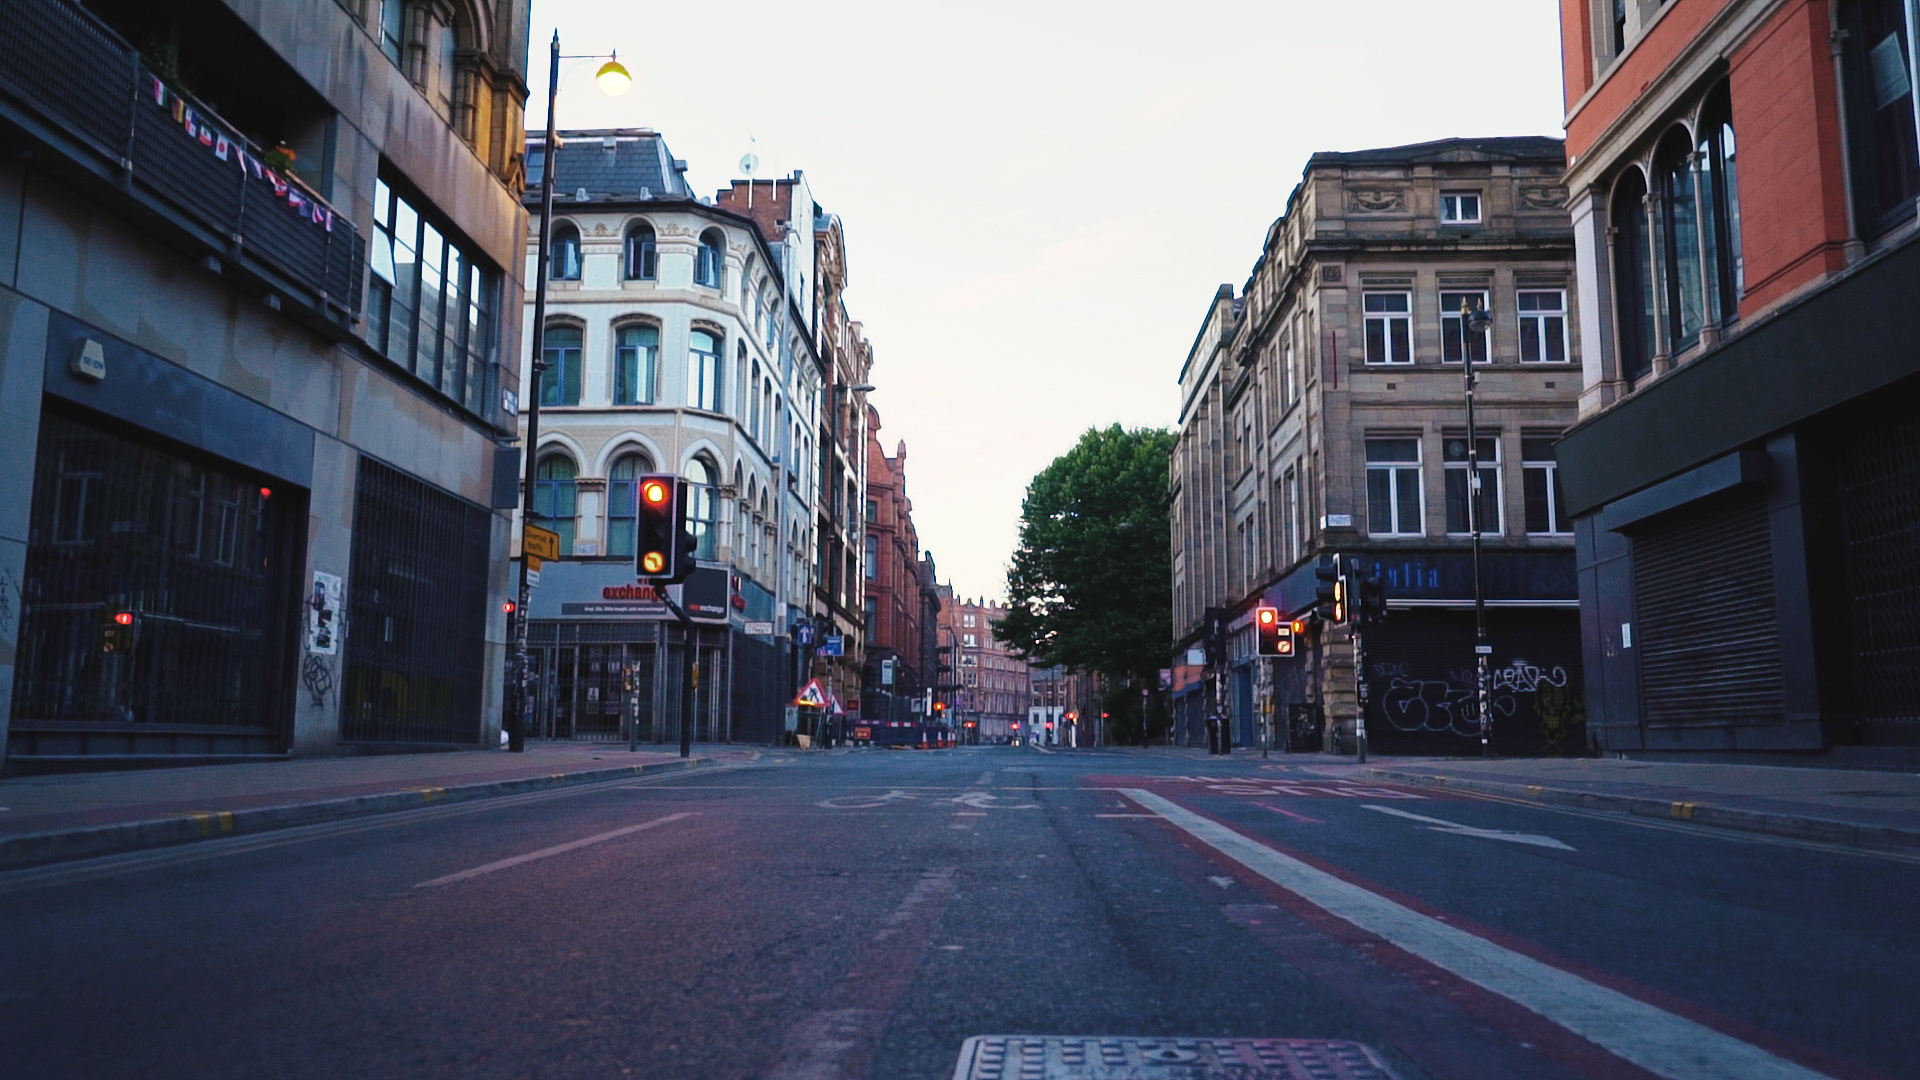 A high street in Manchester, where Spice is dealt to the homeless